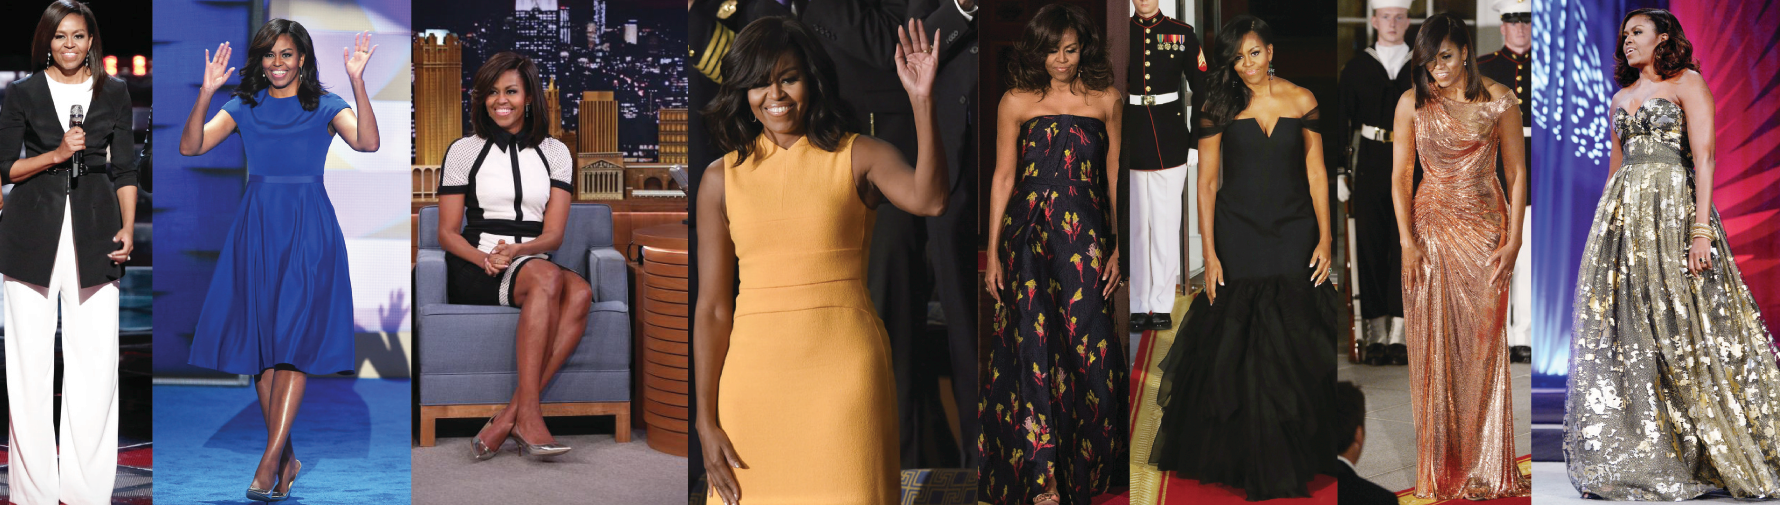 Michelle Obama, one of the most alluring women on earth!